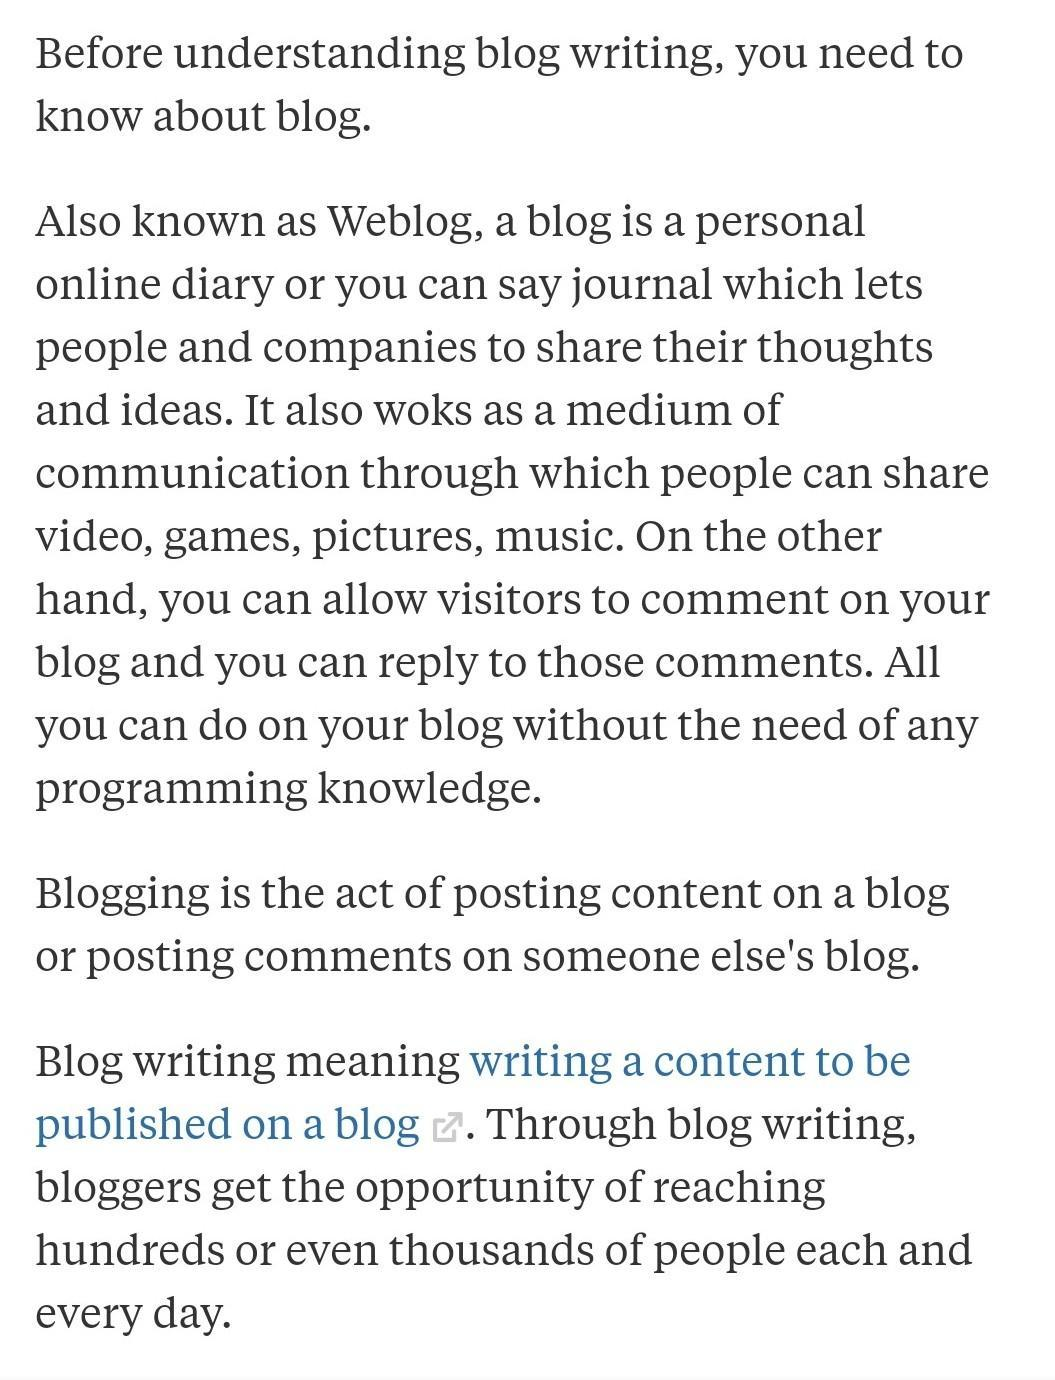 what is meaning of blog writing   Brainly.in